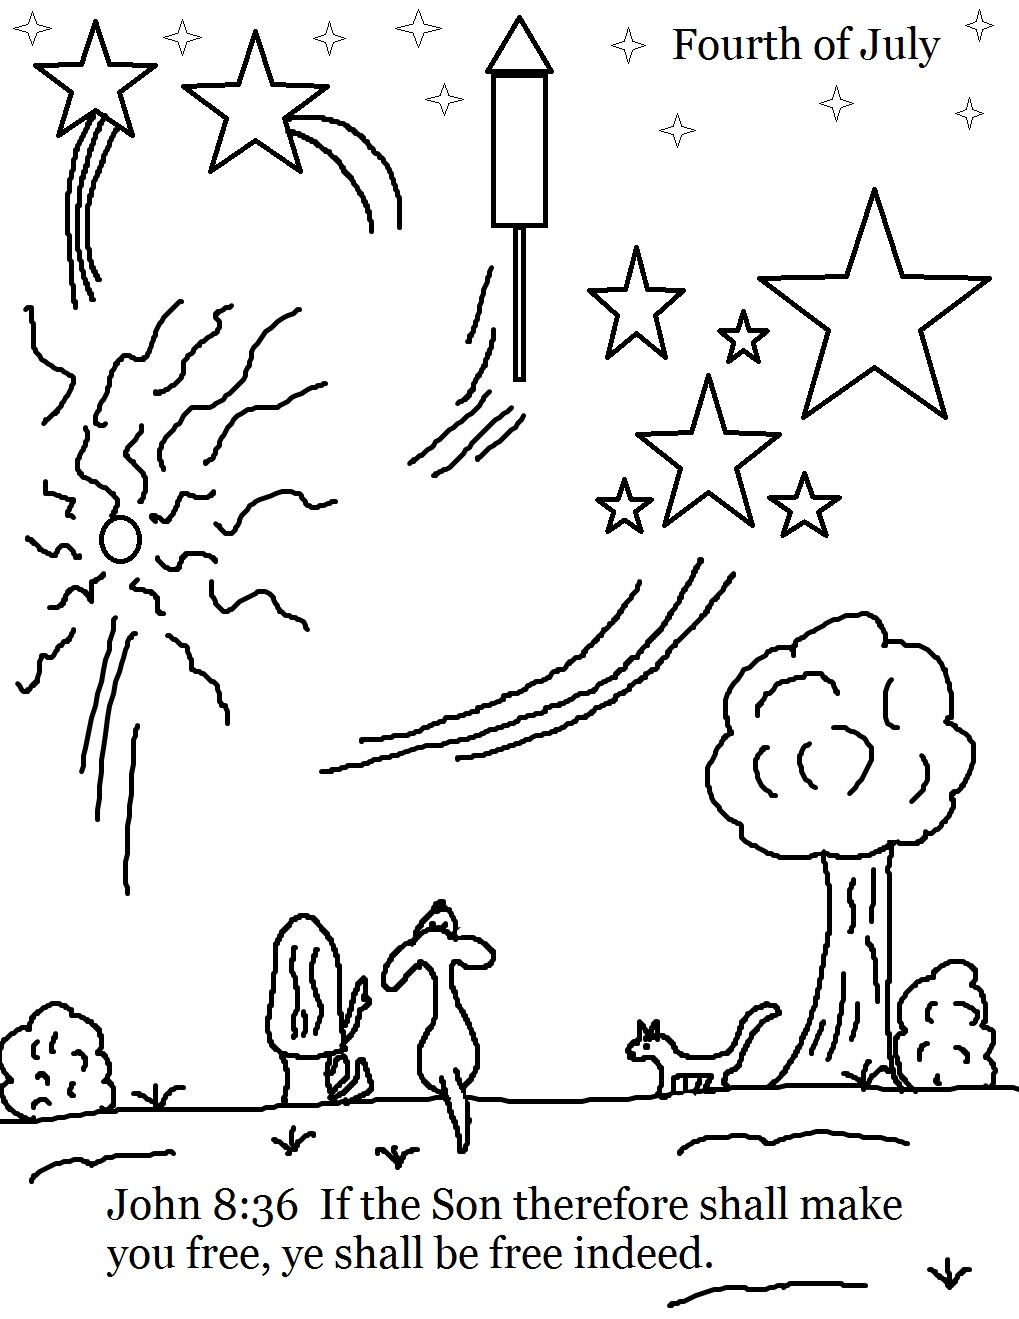 Printable coloring pages july 4 - Coloring Page